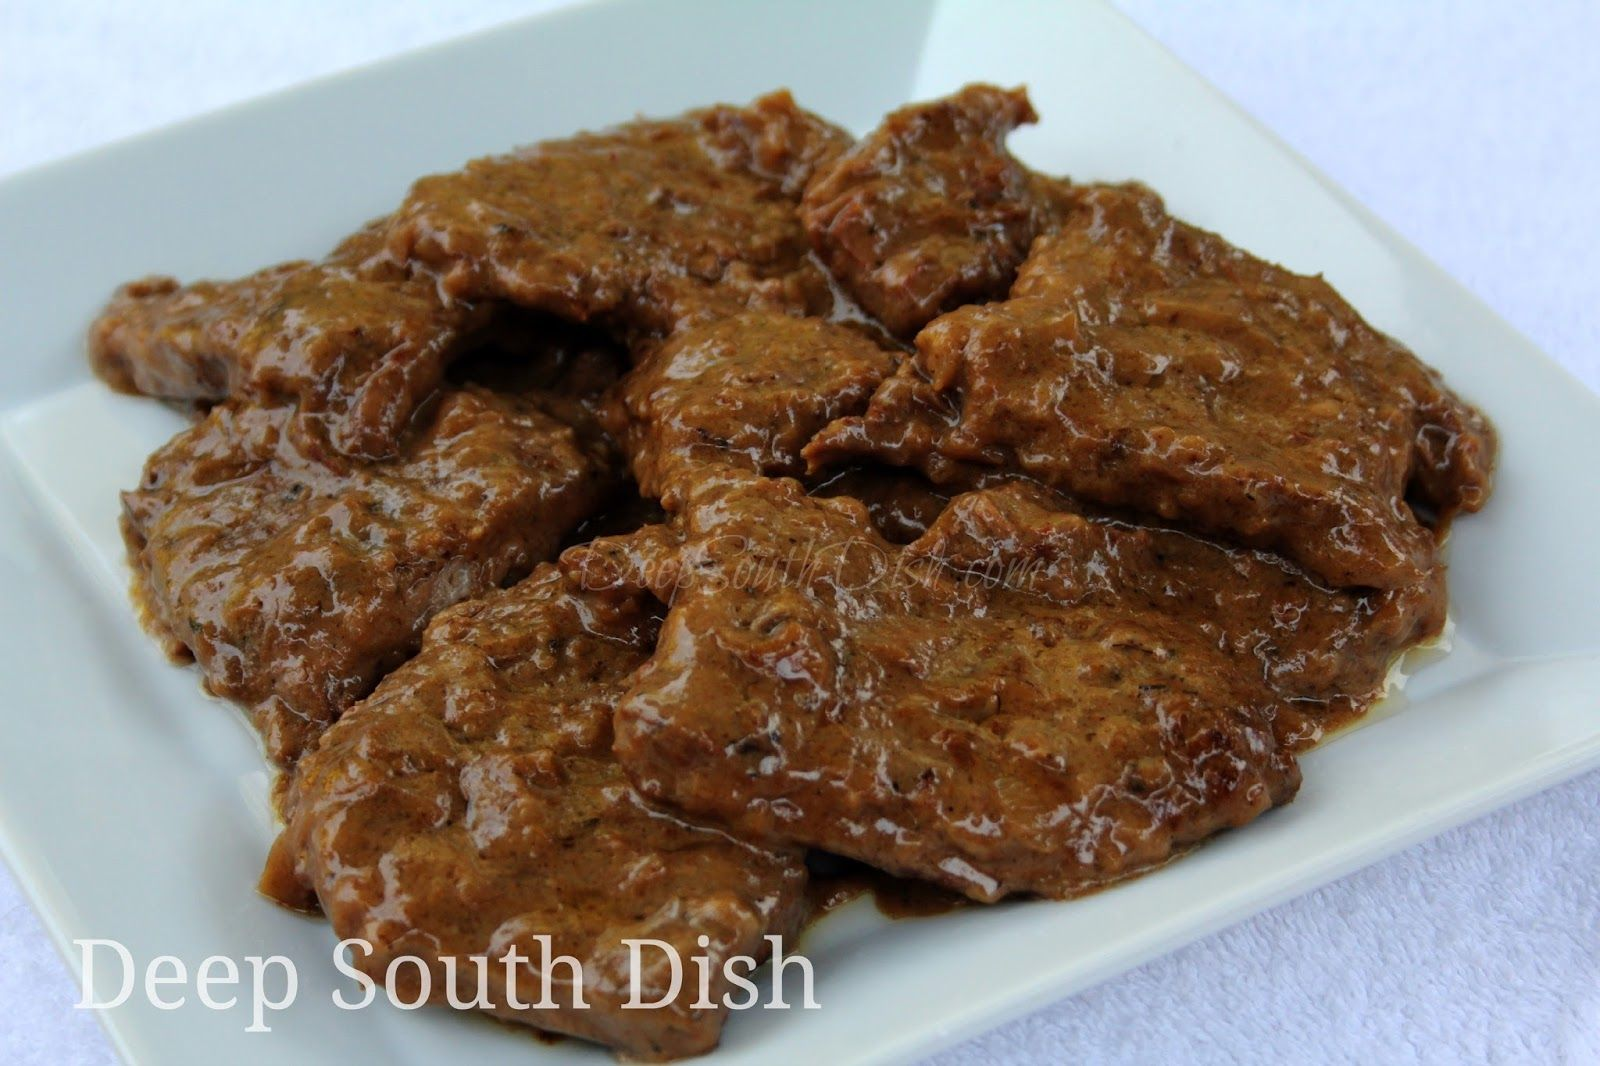 Steak And Gravy With Onion Poor Man Steak Made With Bottom Round Steak And Slow Simmered In A